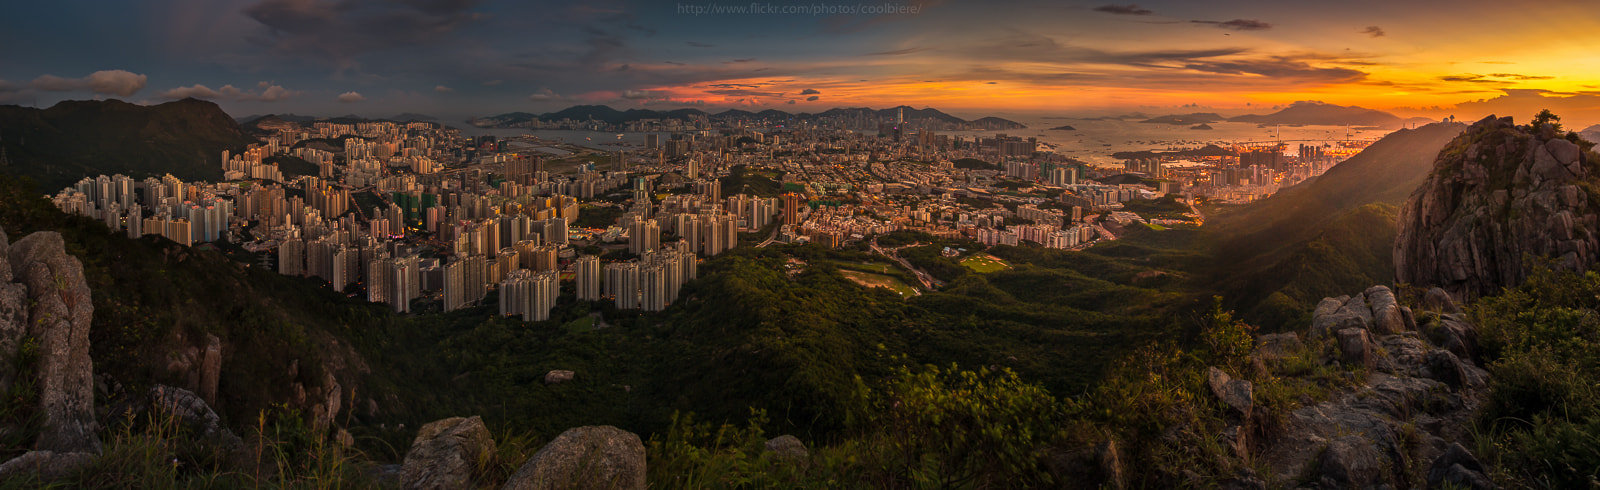 Photograph Hong Kong 180 degree by Coolbiere. A. on 500px